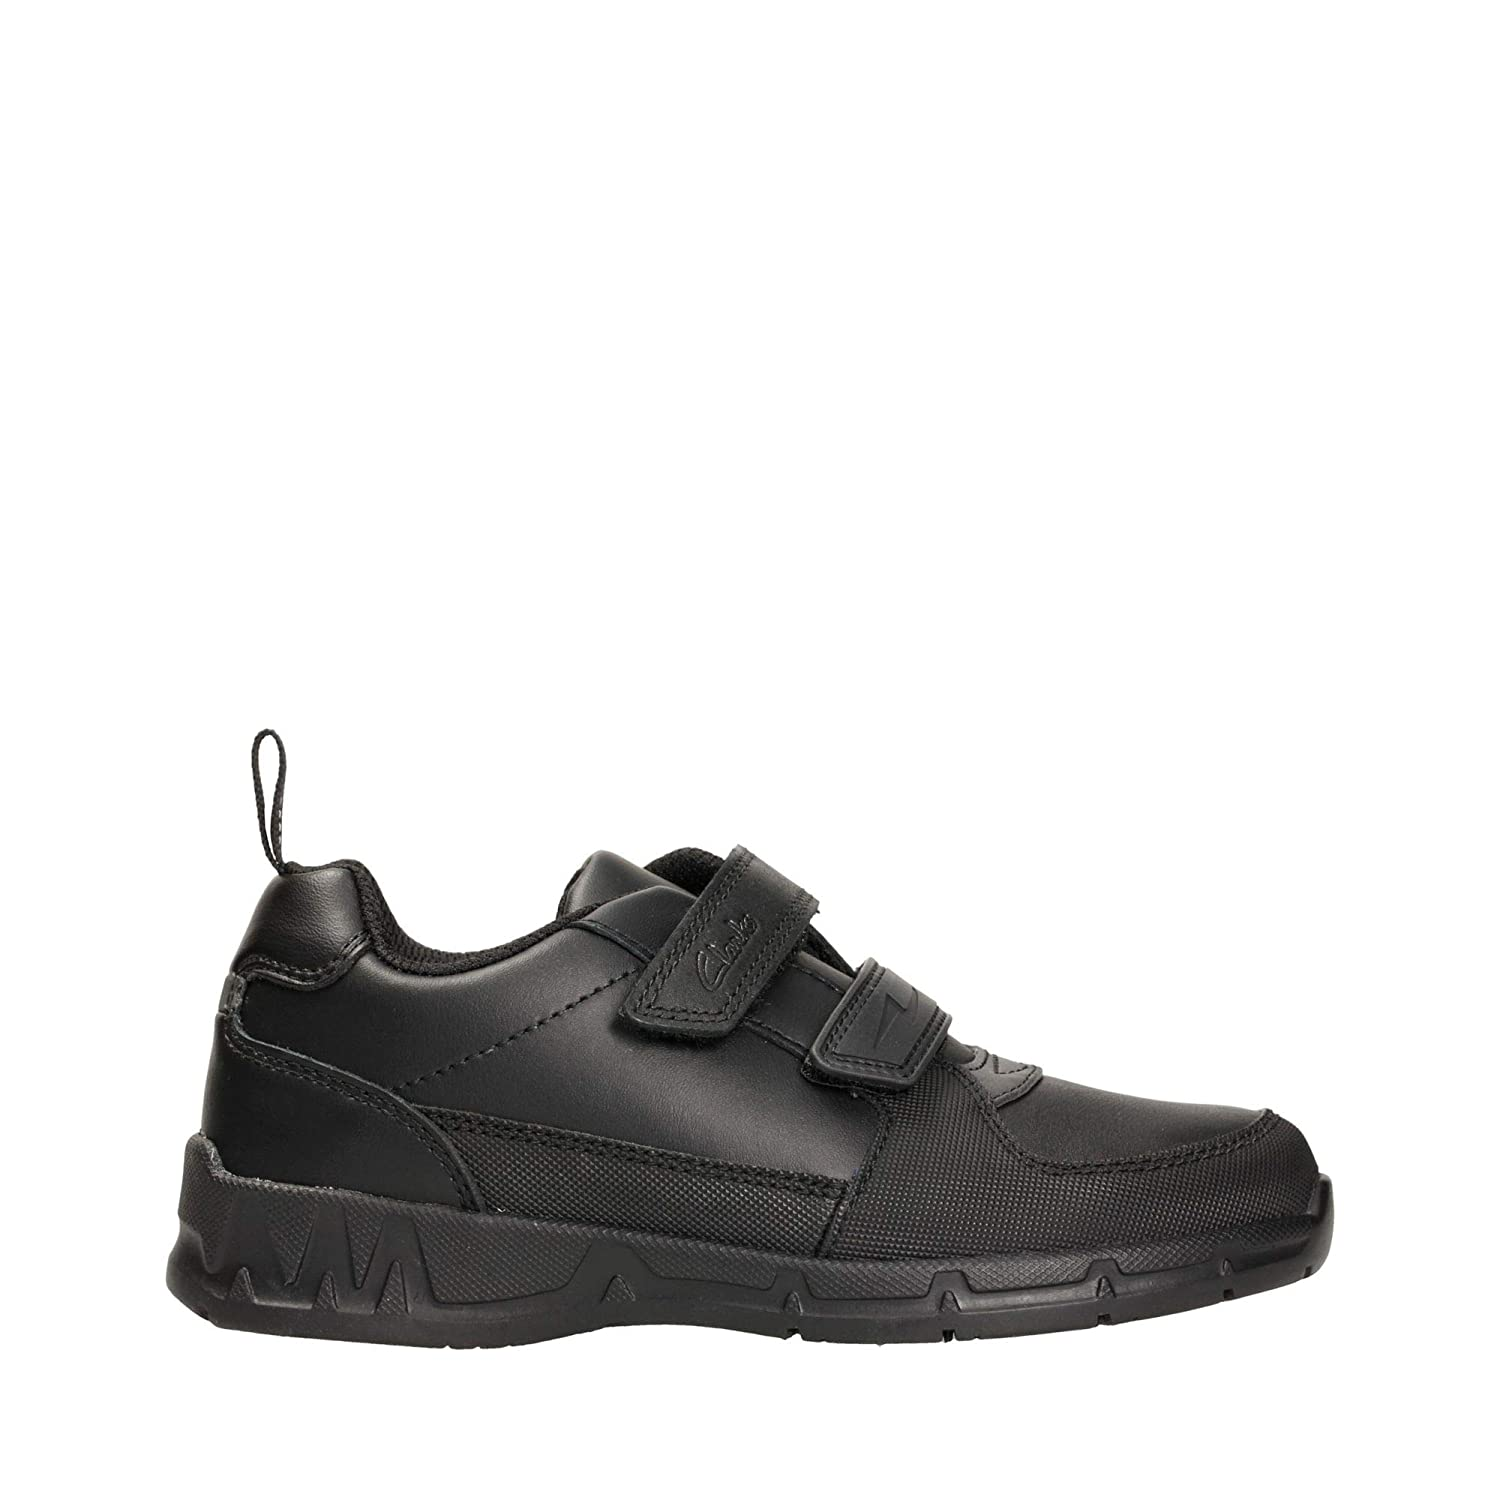 61177943 Clarks Maris Fire Infant Leather Shoes in Black Narrow Fit Size 11:  Amazon.co.uk: Shoes & Bags